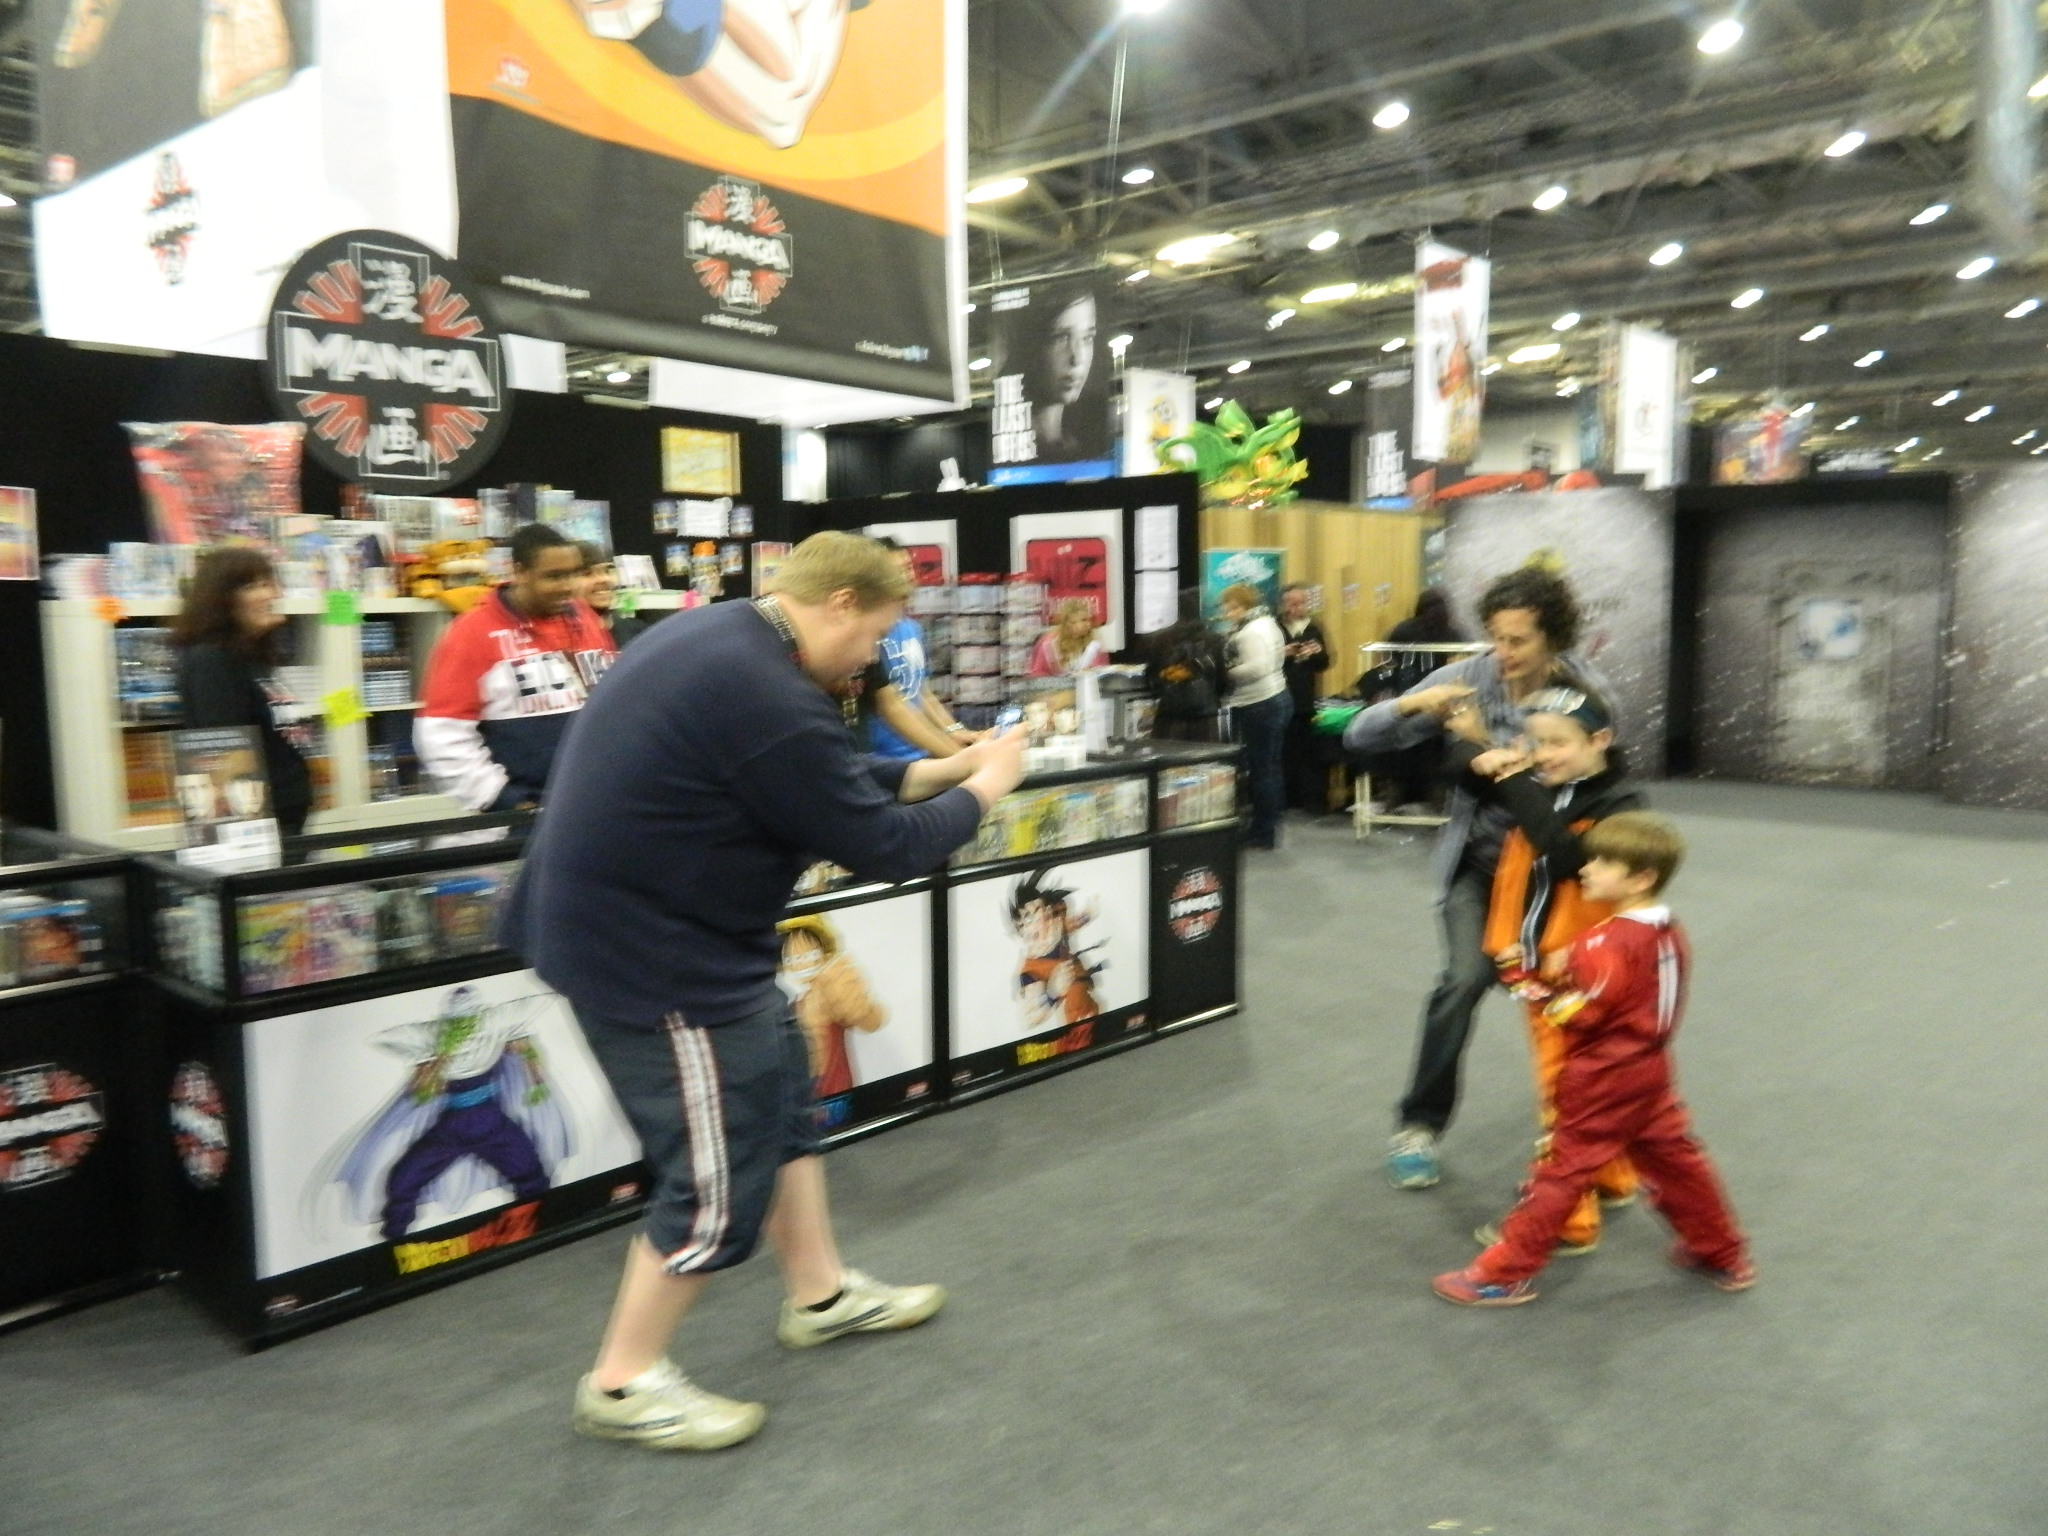 Mcm Expo Stands For : Mcm london expo comic con preview th